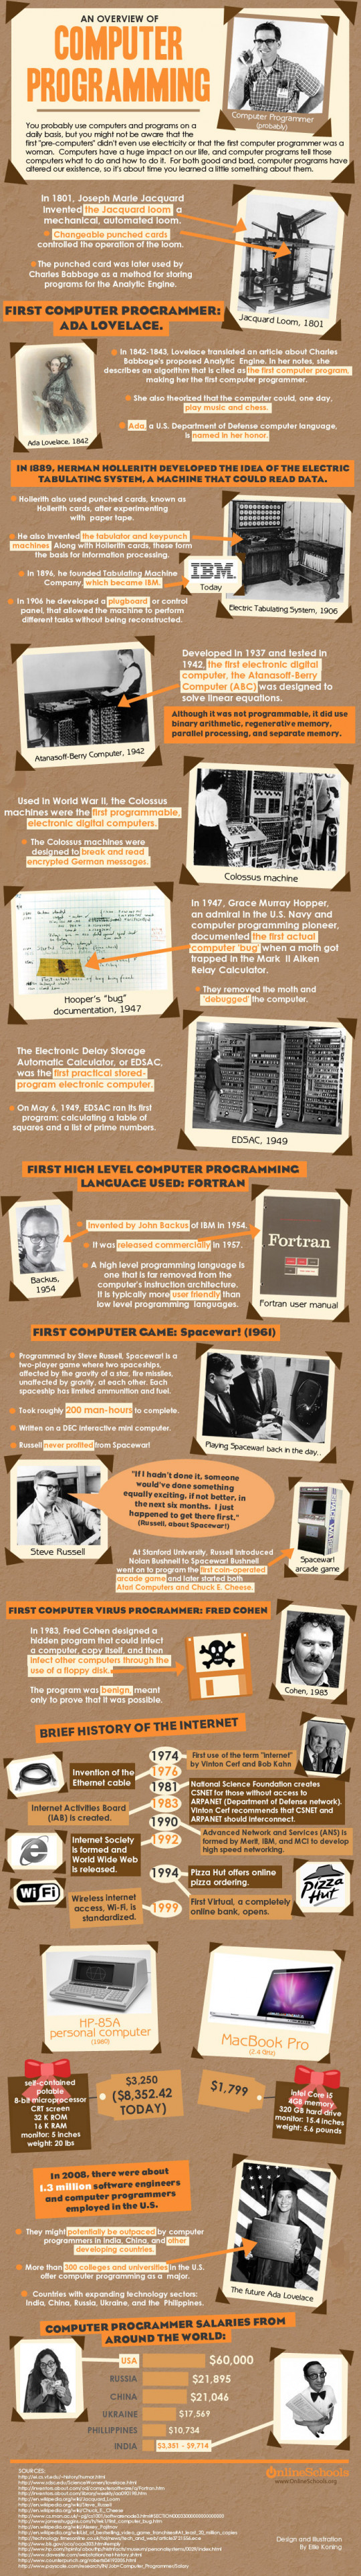 The History Of Computer Programming